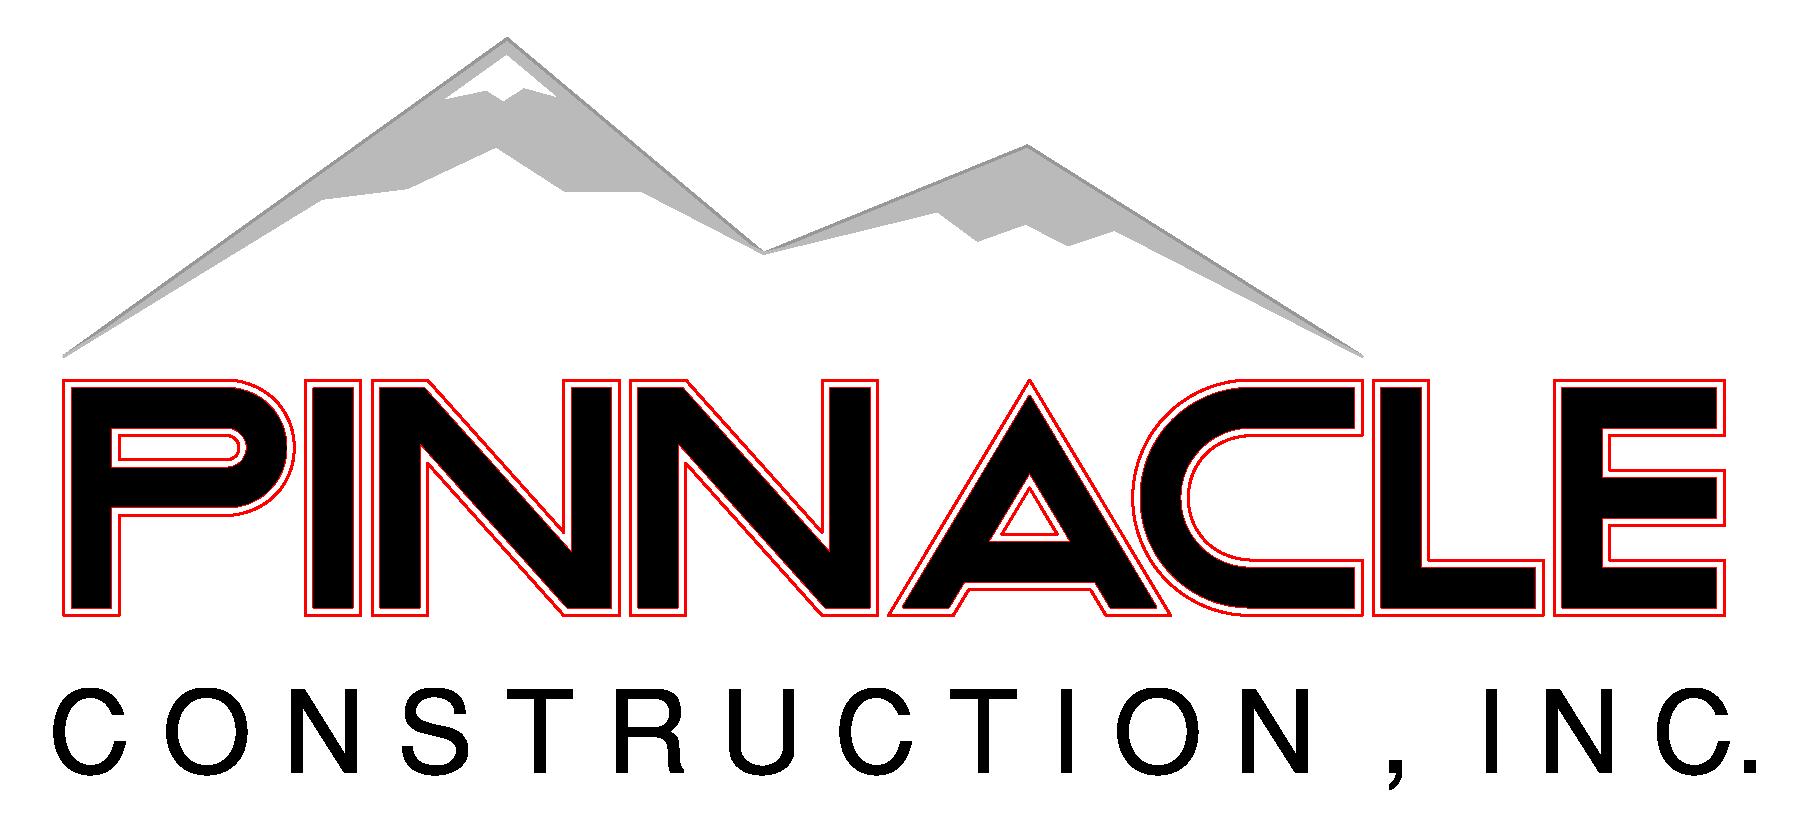 Pinnacle Construction | General Contractor, Project Management